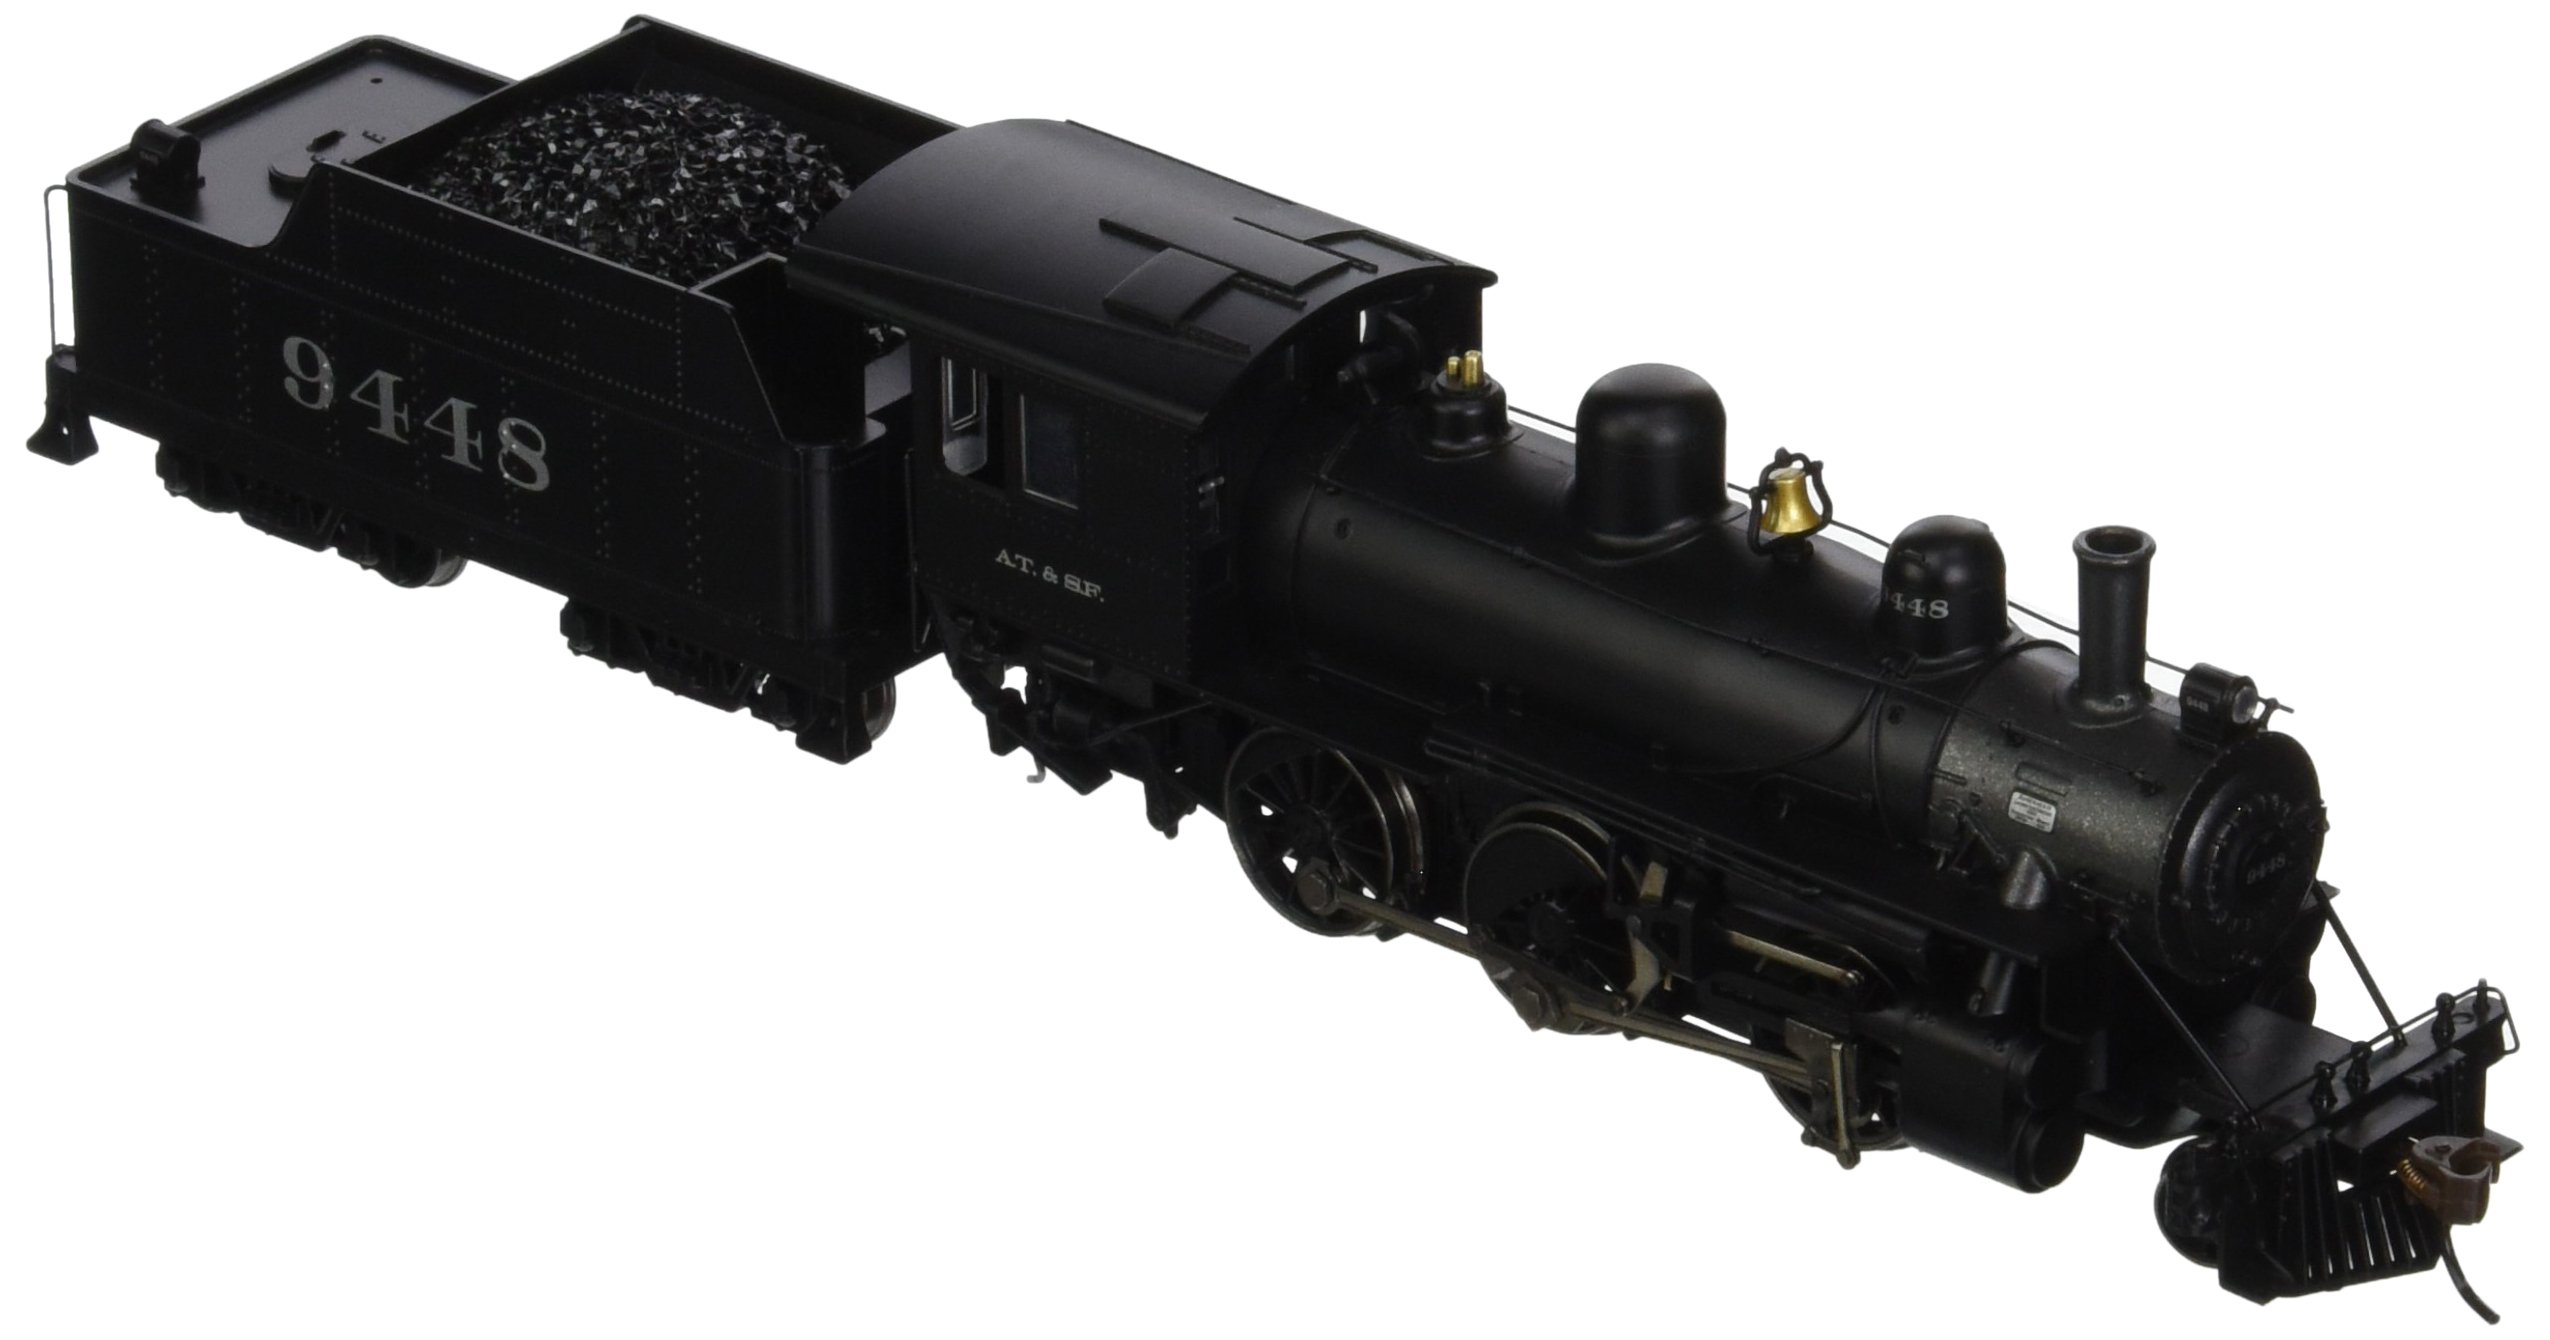 Bachmann Industries Alco 2-6-0 DCC Sound Value Equipped Locomotive - ATSF #9448 - (1:87 HO Scale)